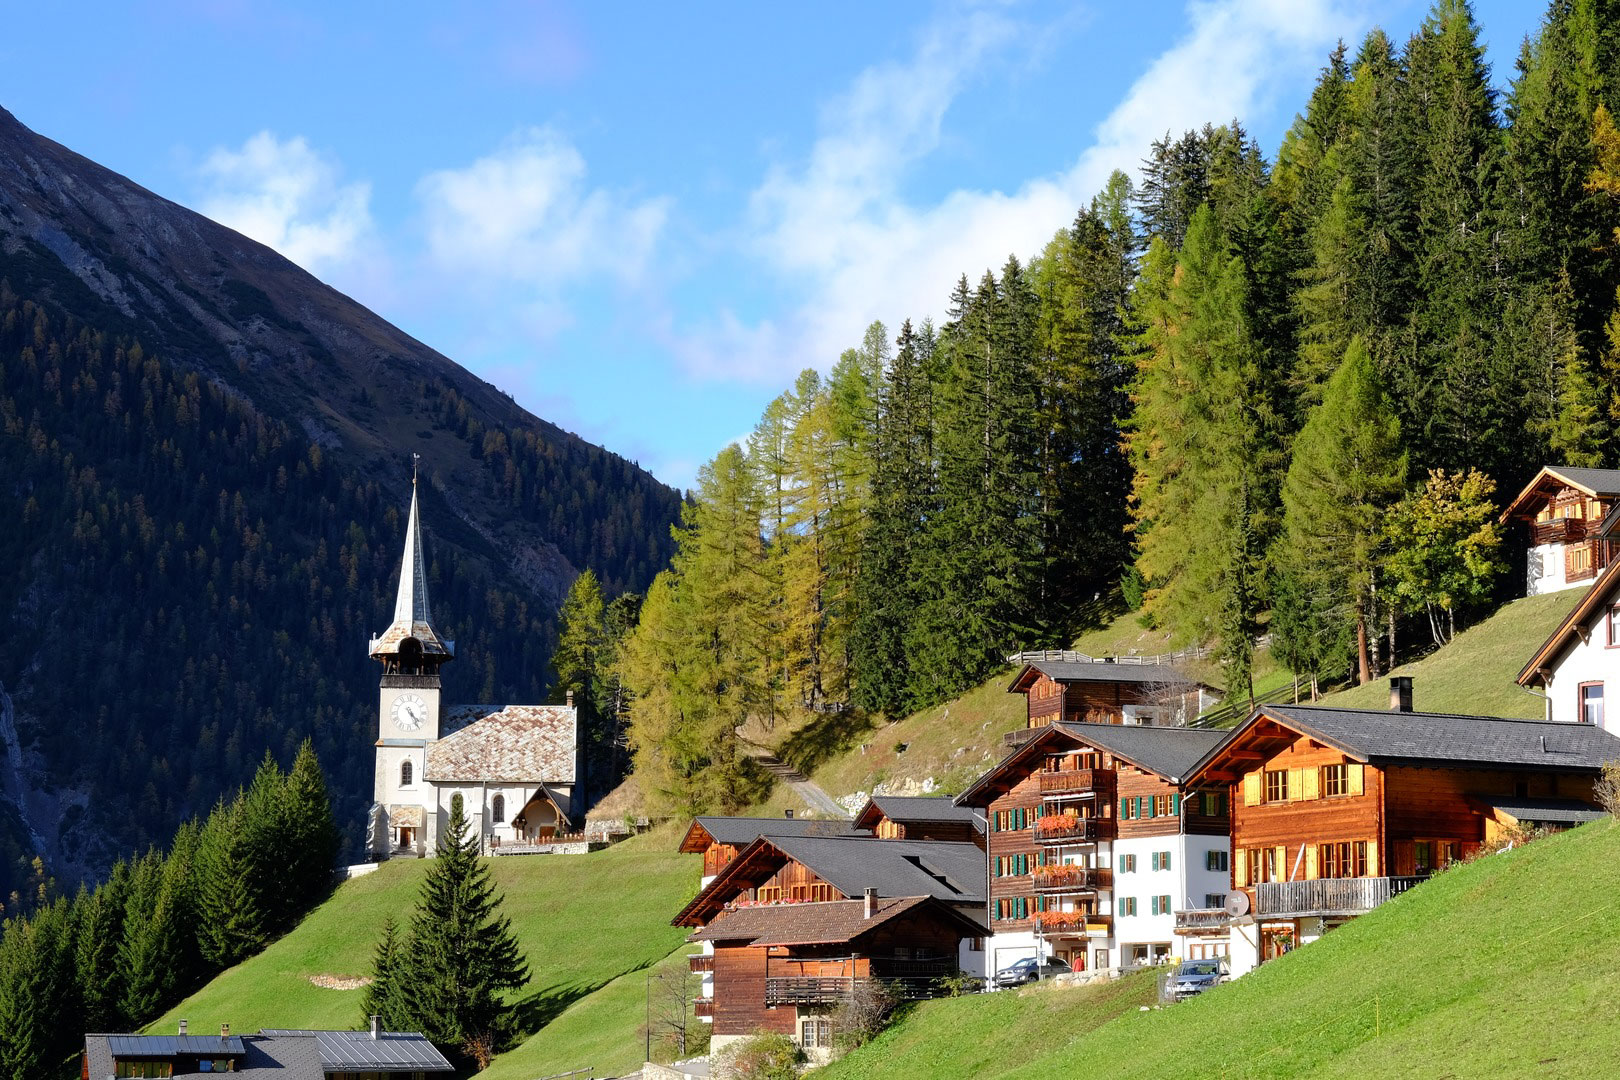 Monstein village, Rinerhorn area